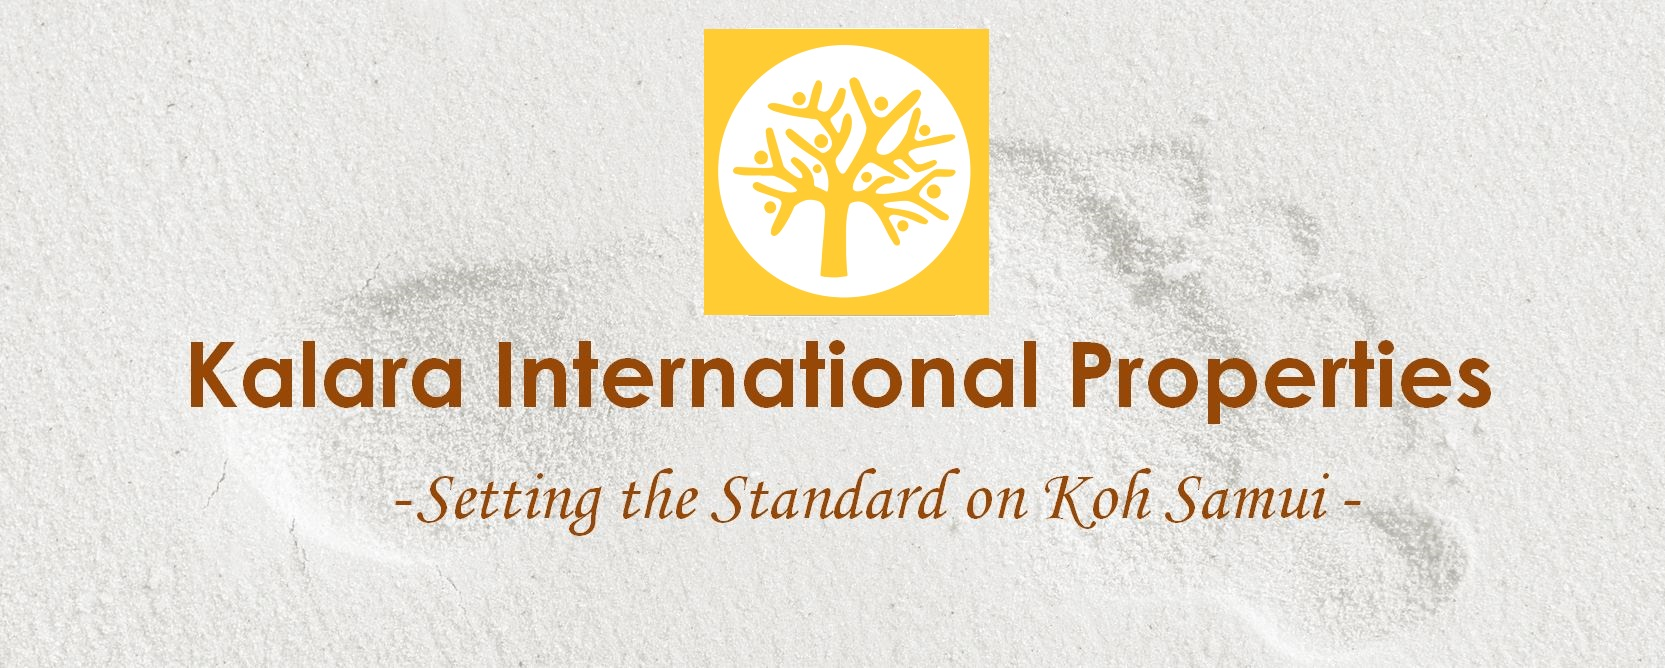 Kalara Developments Co., Ltd. the Standard on Koh Samui